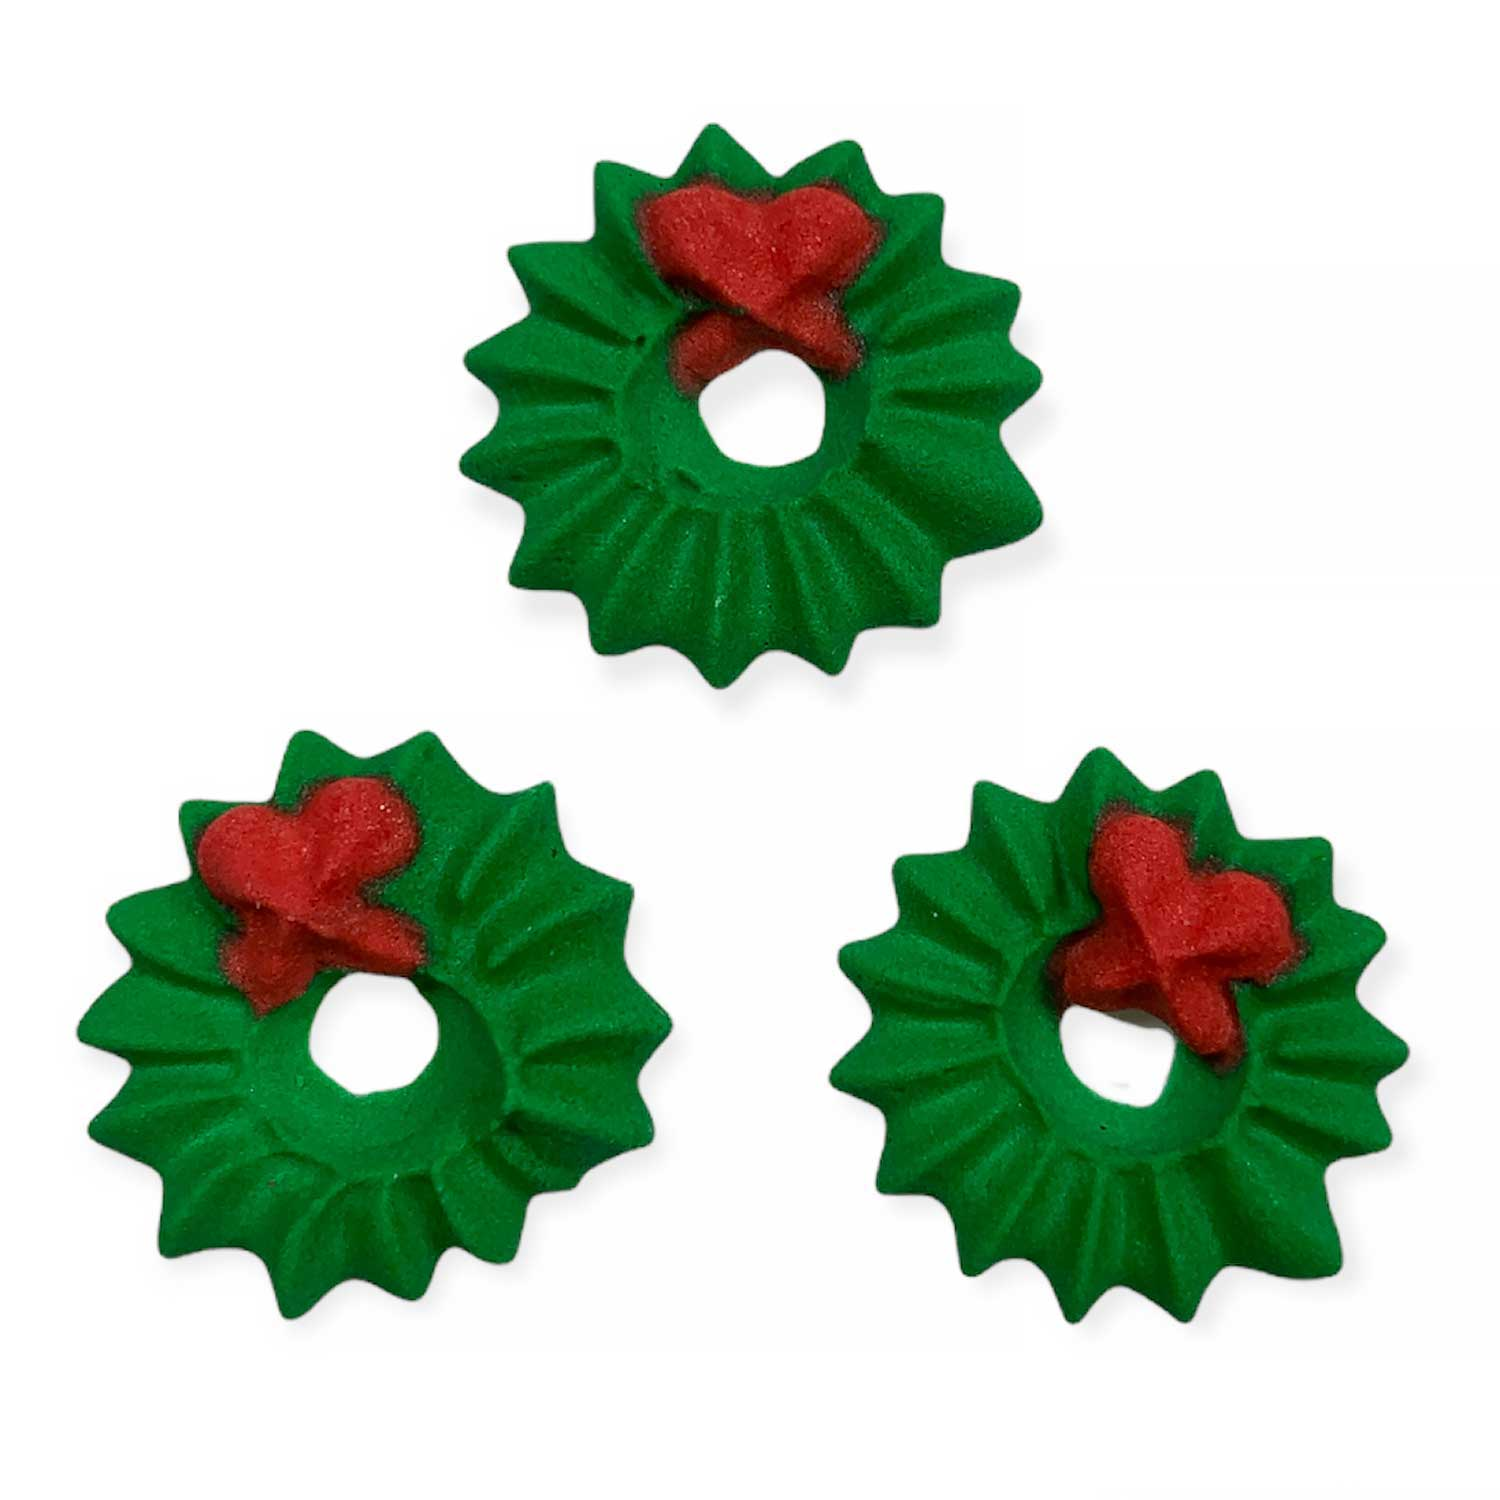 Icing Layons - Tiny Christmas Wreath